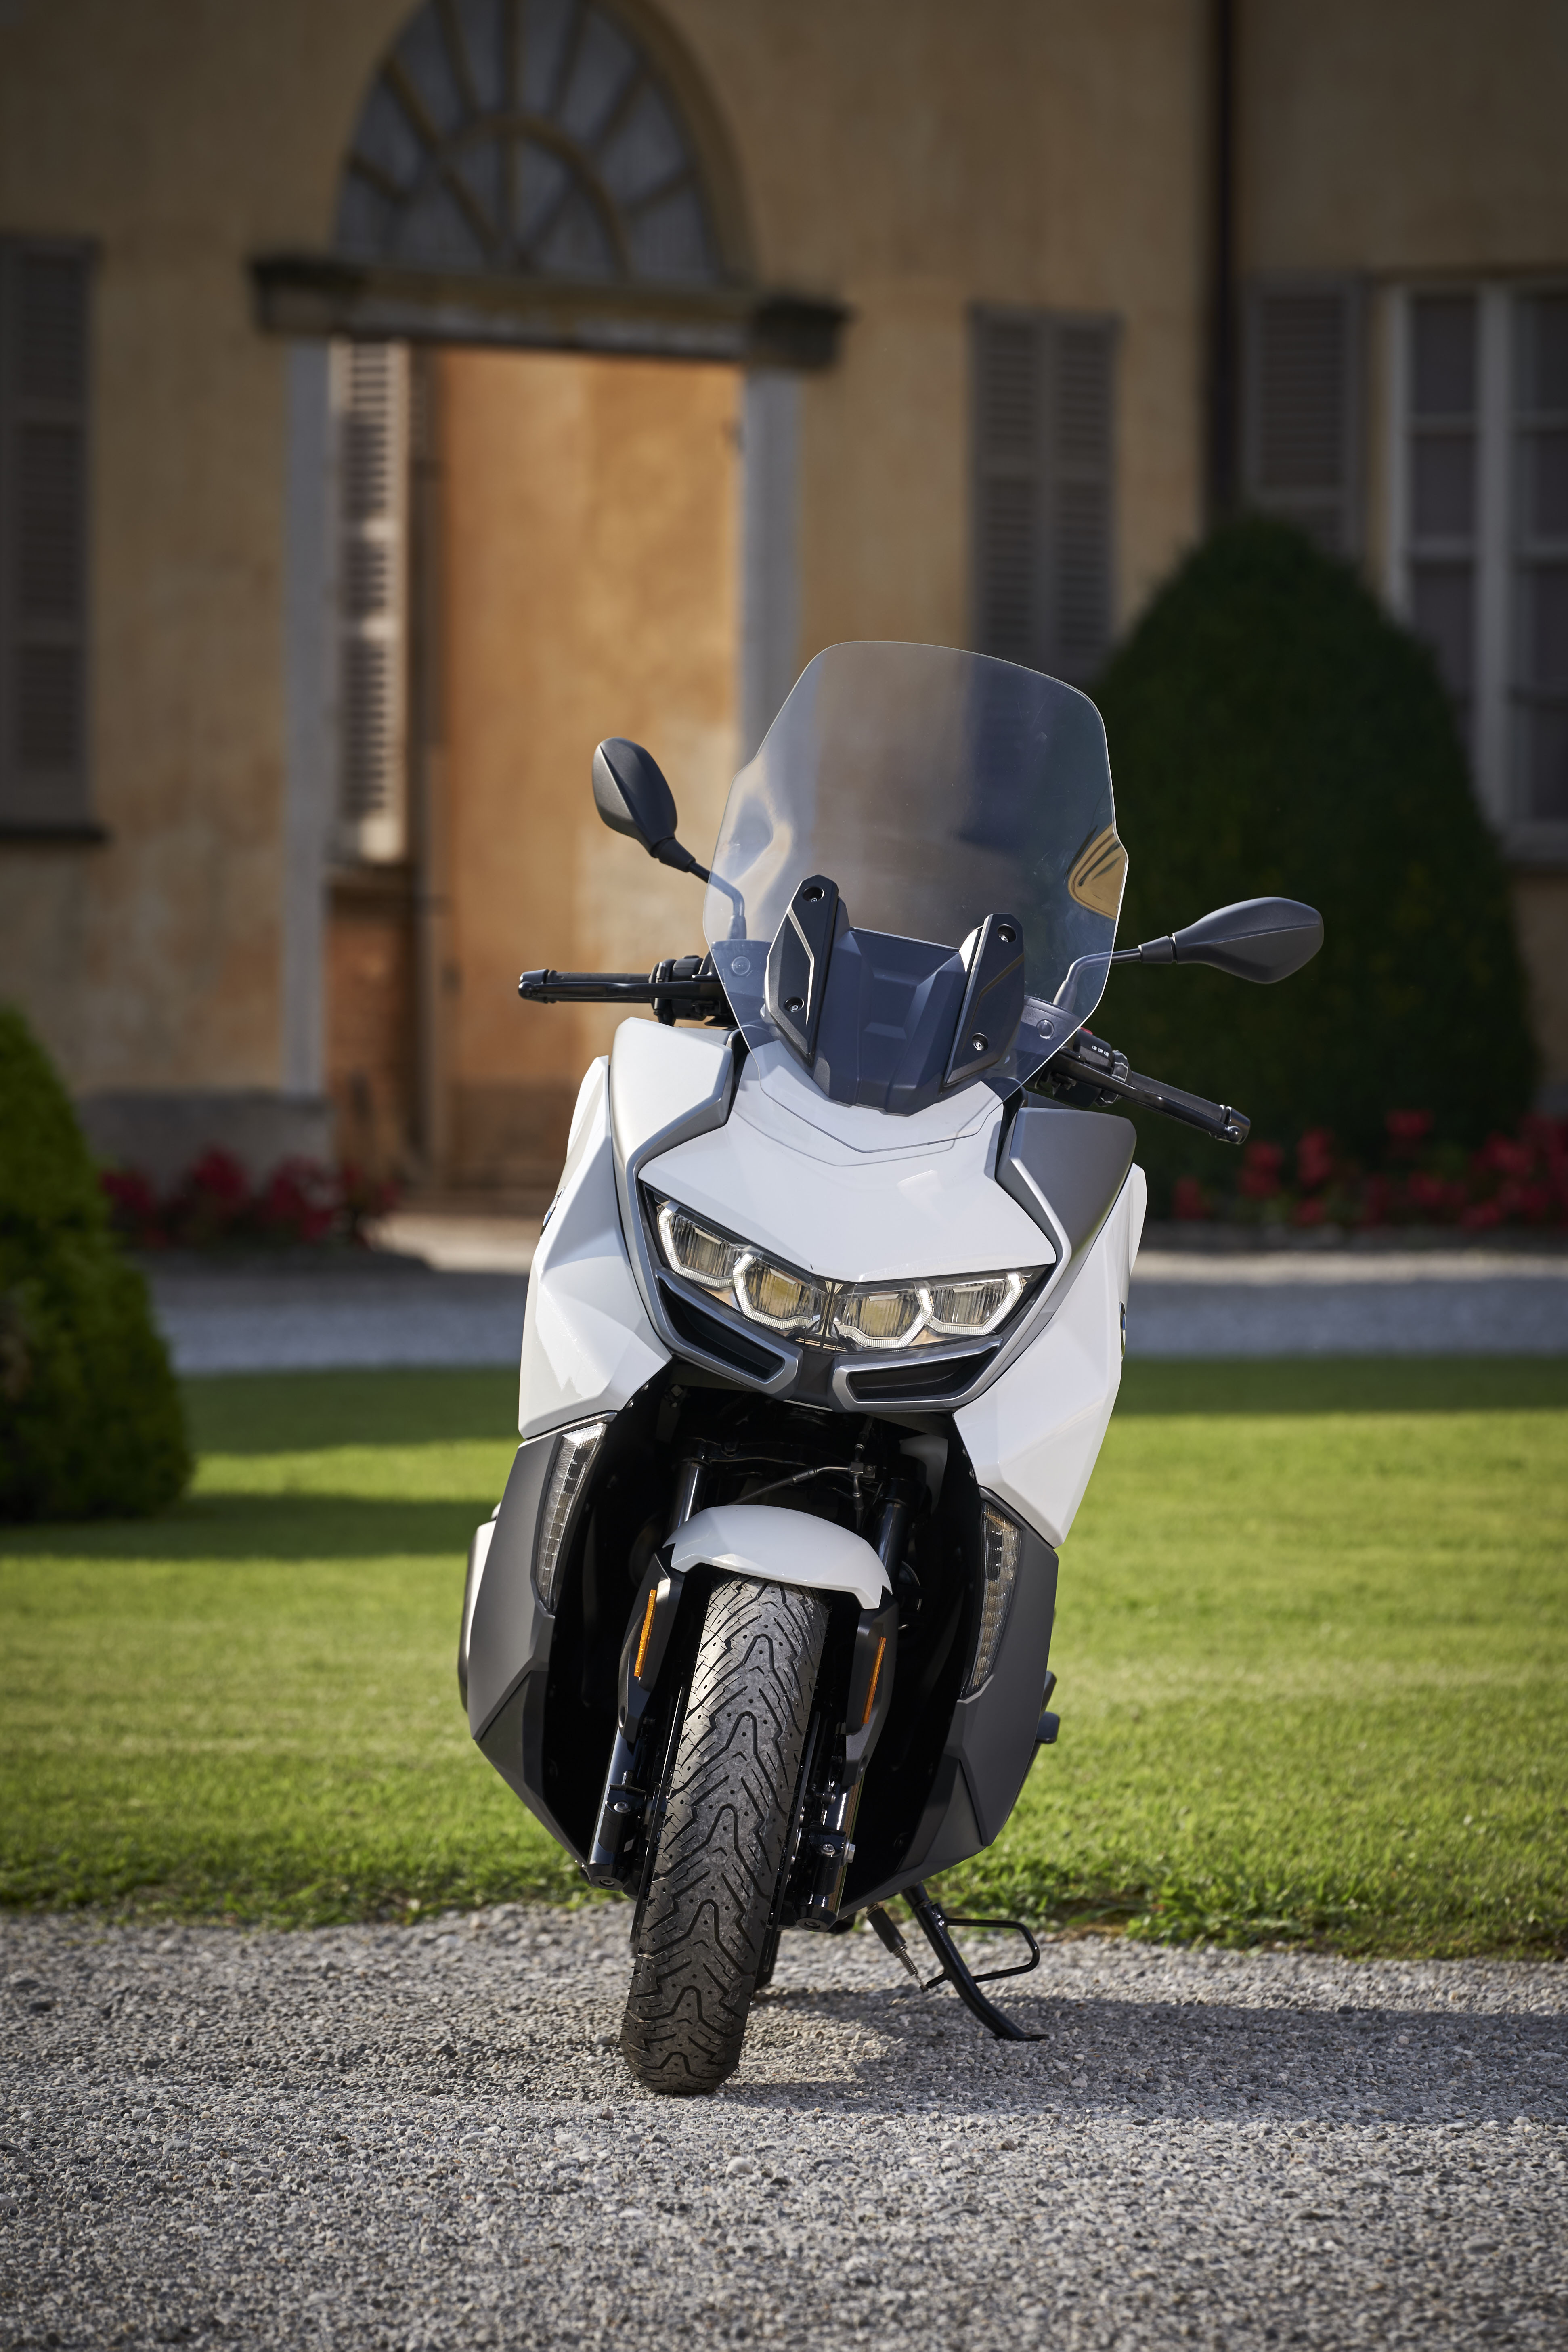 2019 Bmw C400gt First Look Motorcycle Com